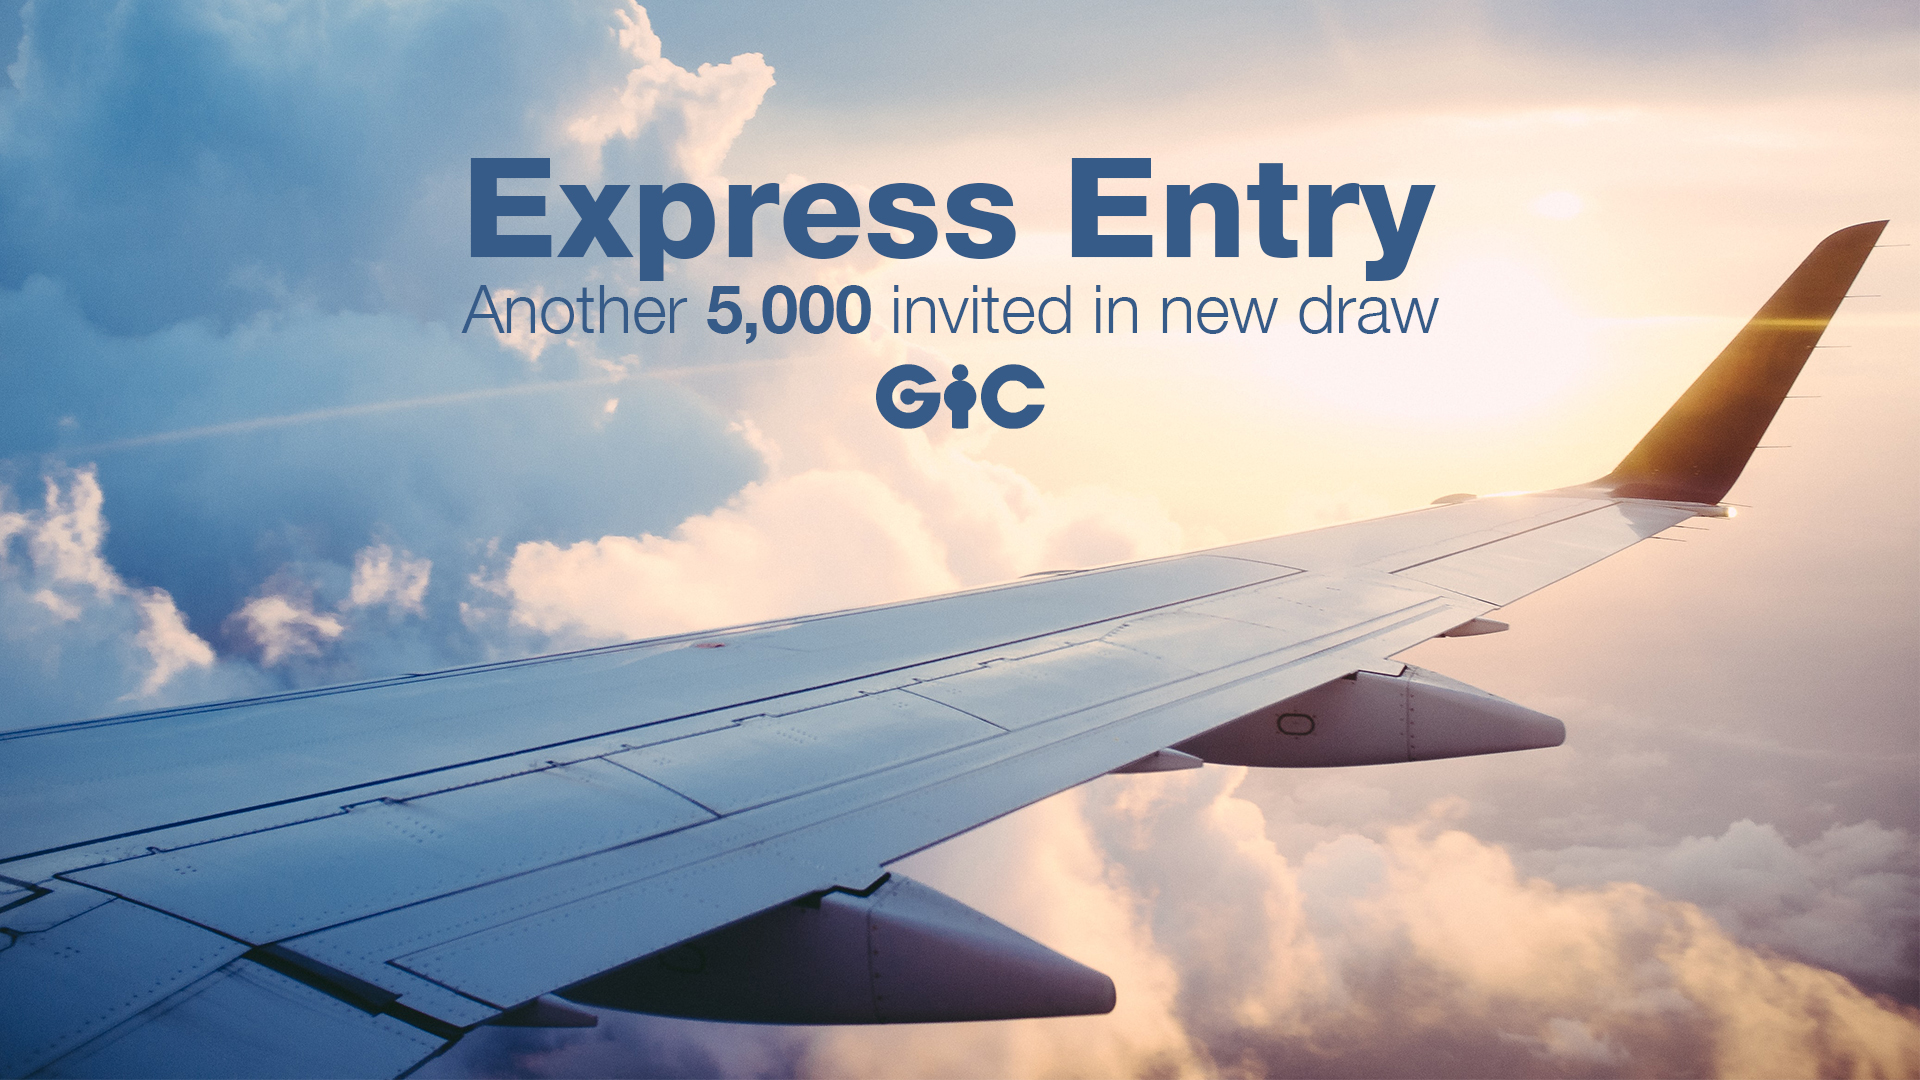 Express Entry Another 5,000 invited in new draw